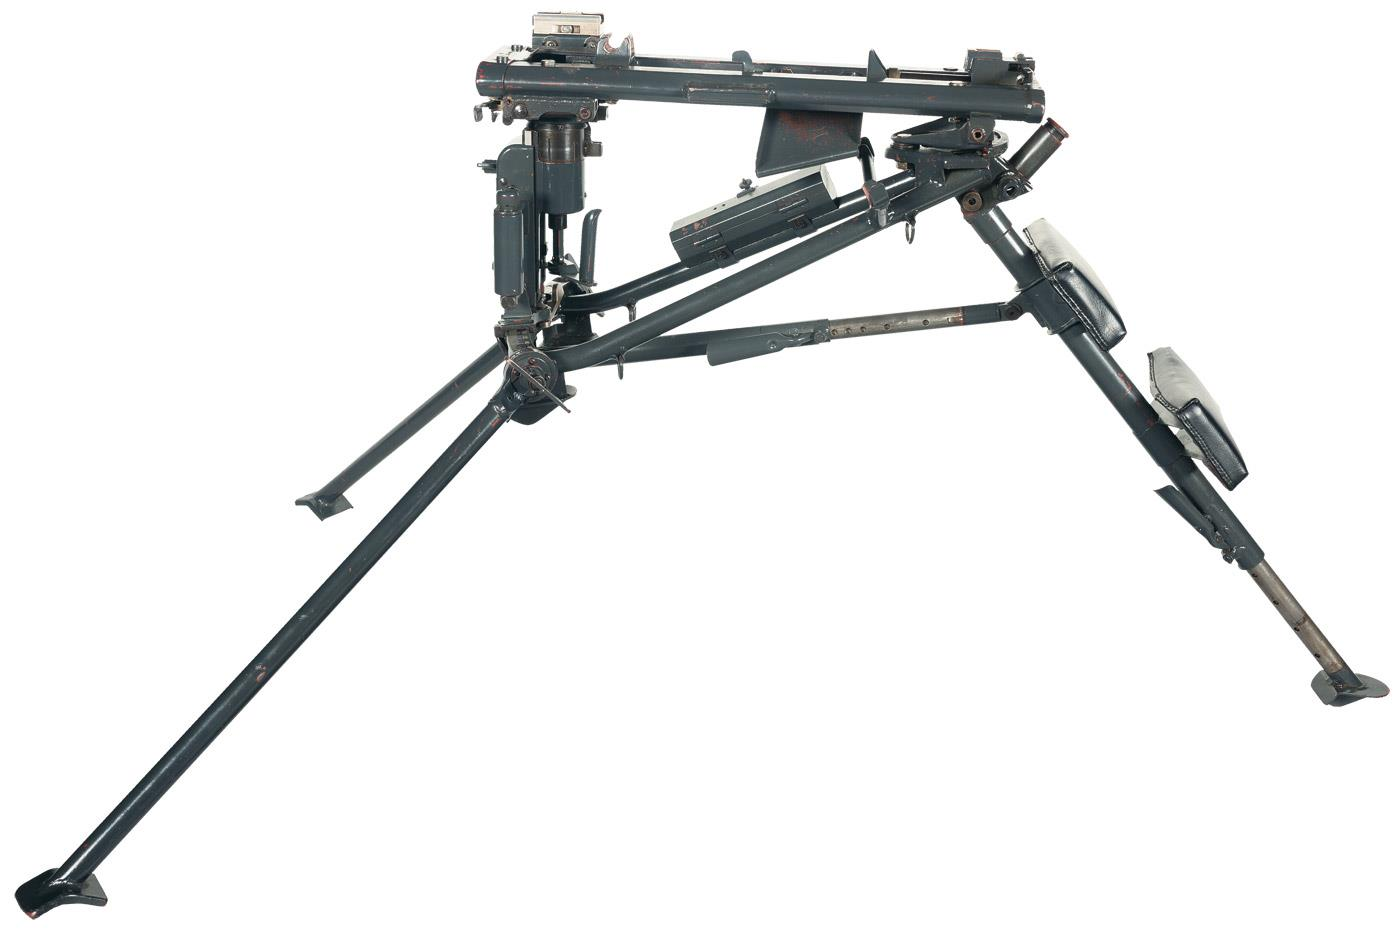 World War Ii Production Field Mount For A Mg42 Machine Gun